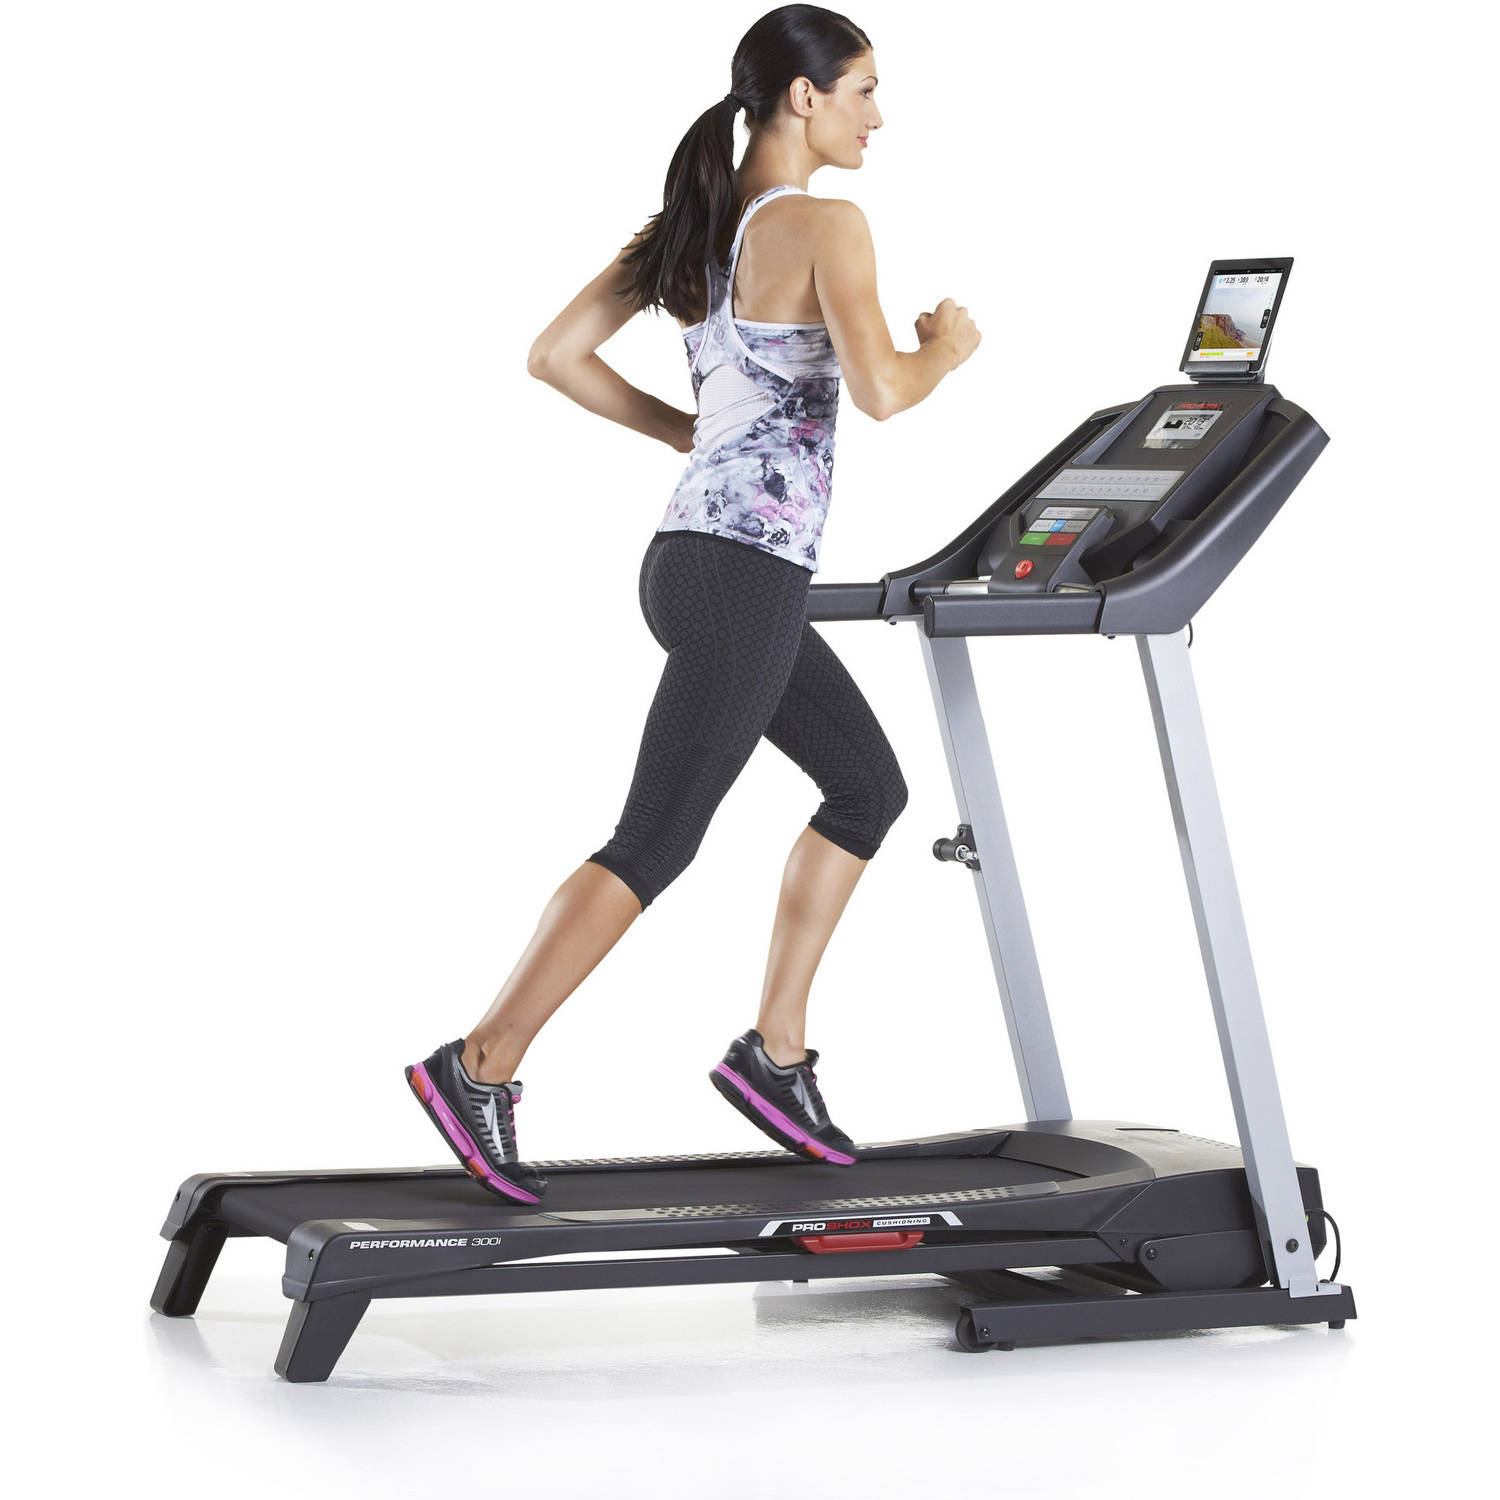 ProForm Performance 300i Treadmill with Heart Rate Monitor